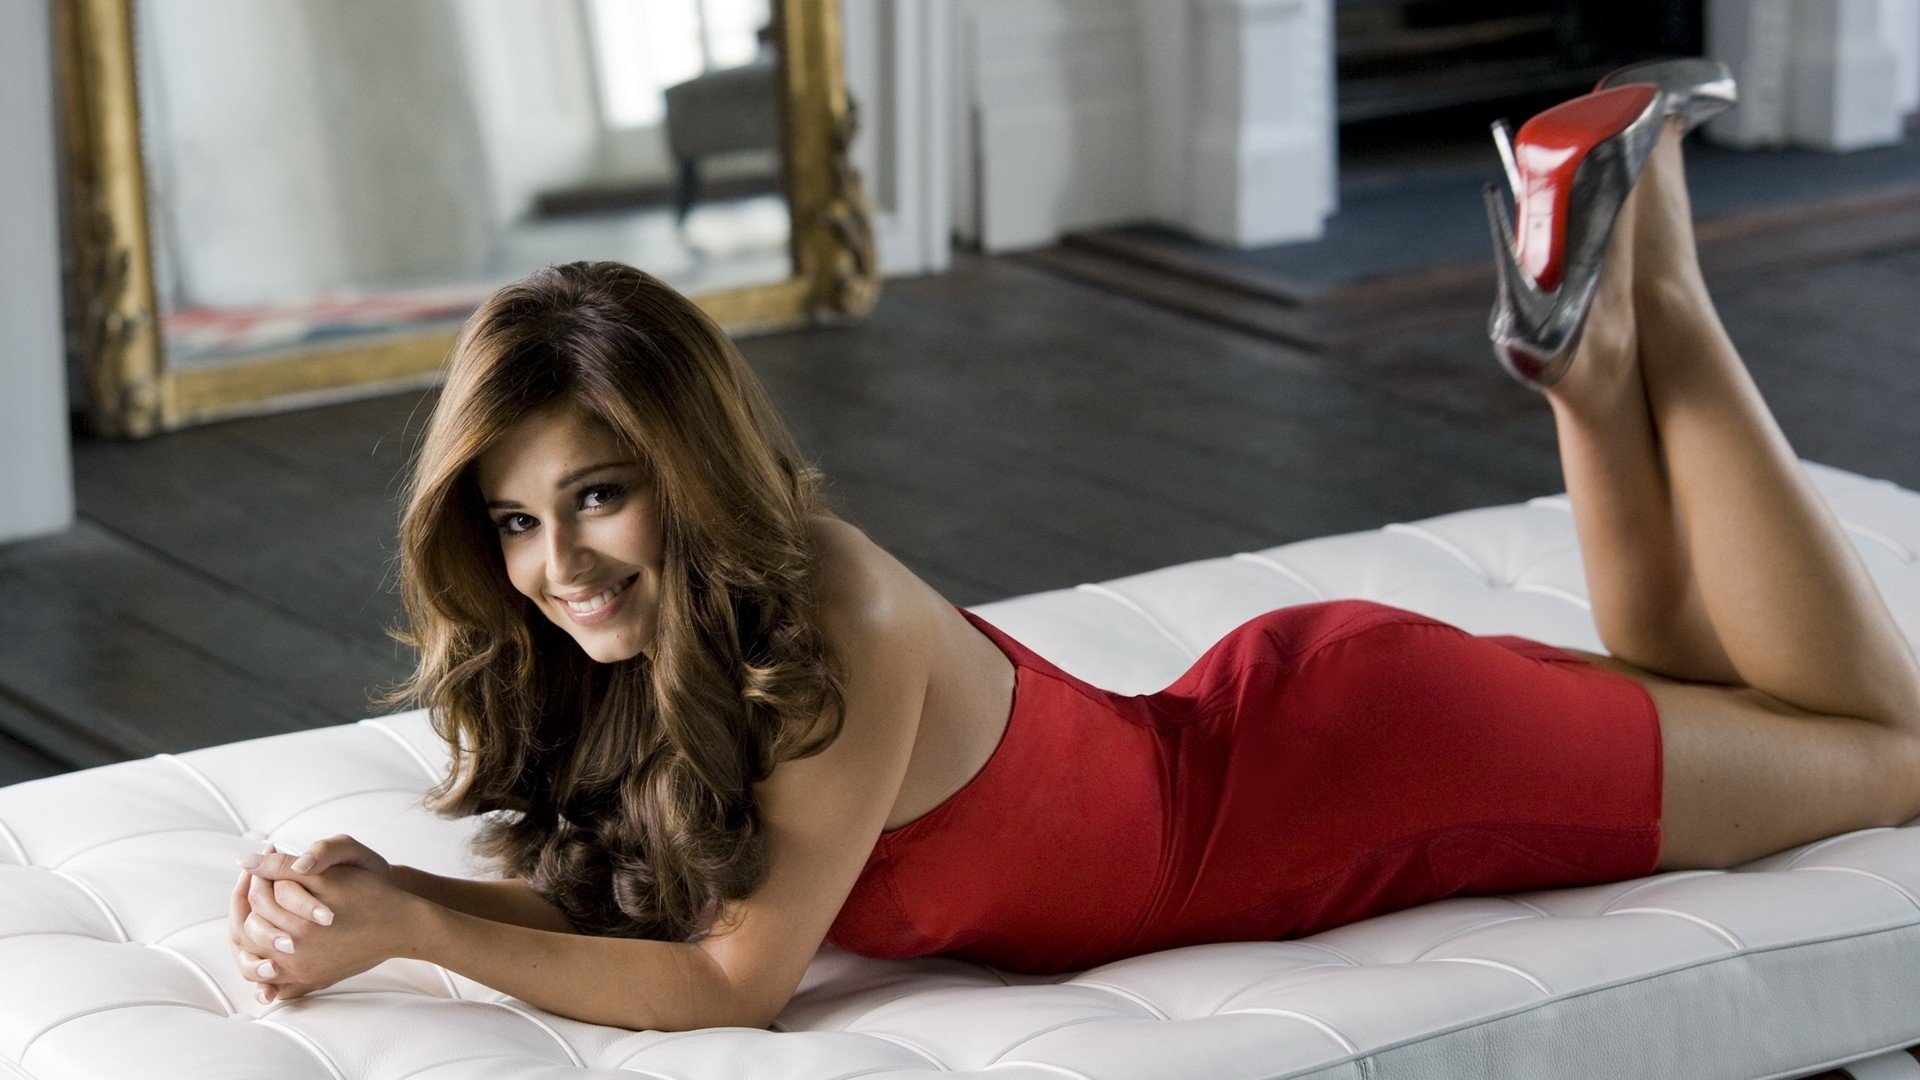 Cheryl Cole Hd Wallpaper Background Image 1920x1080 Id